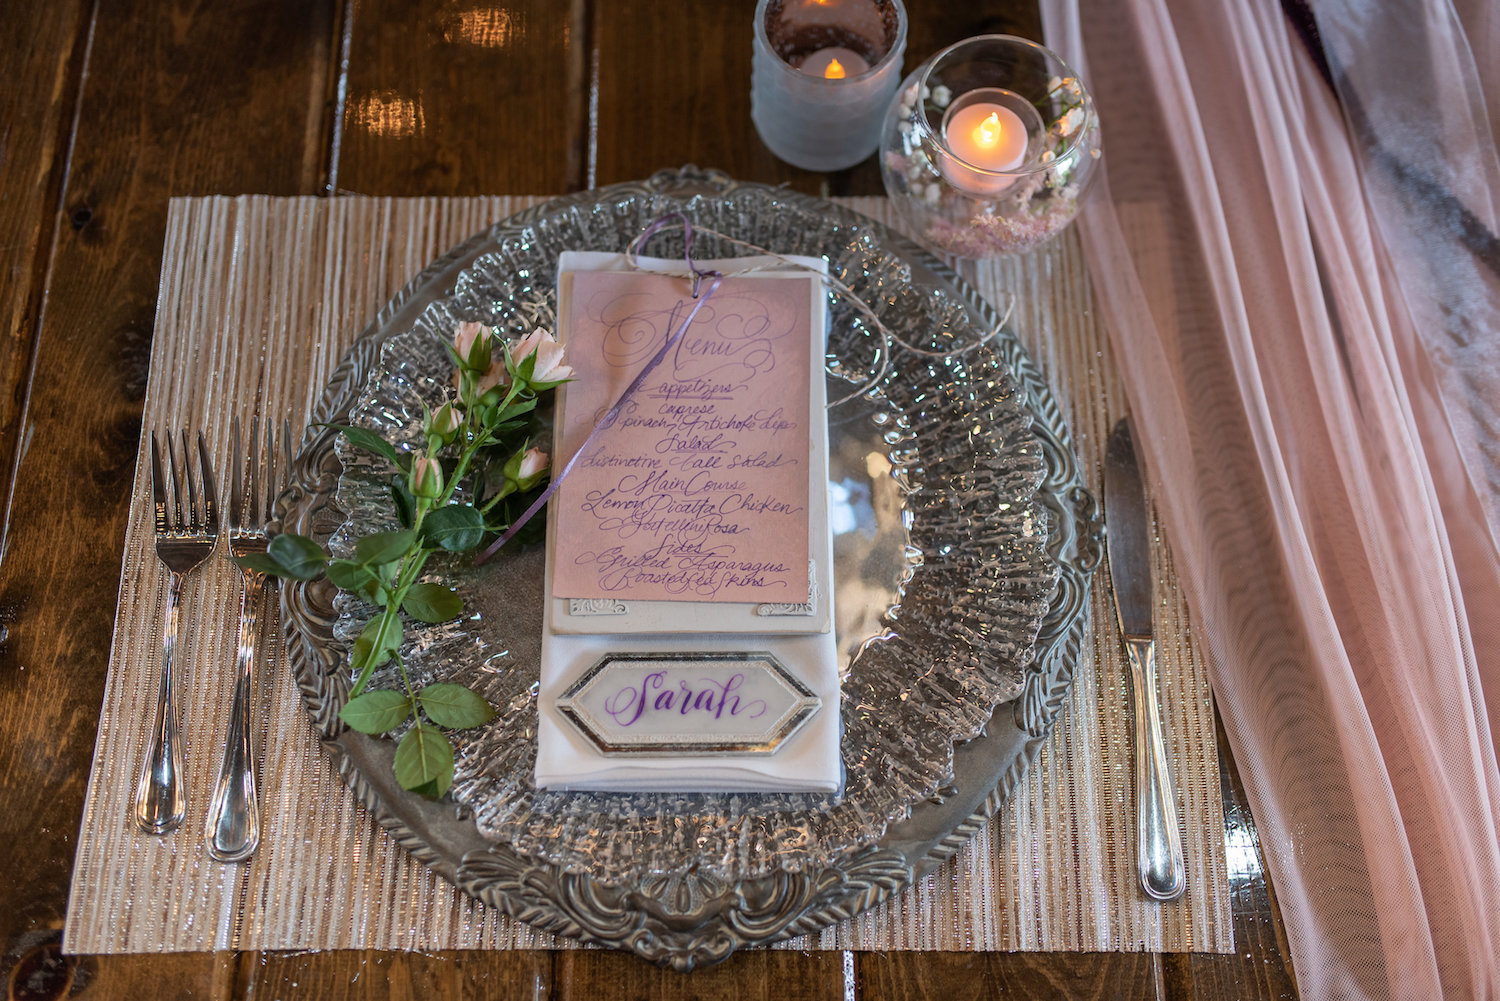 Sarah and Mark | Hope Glen Farm | Kelly Birch Photo | Sixpence Events & Planning wedding planning in Minnesota | silver fancy charger with pink menus